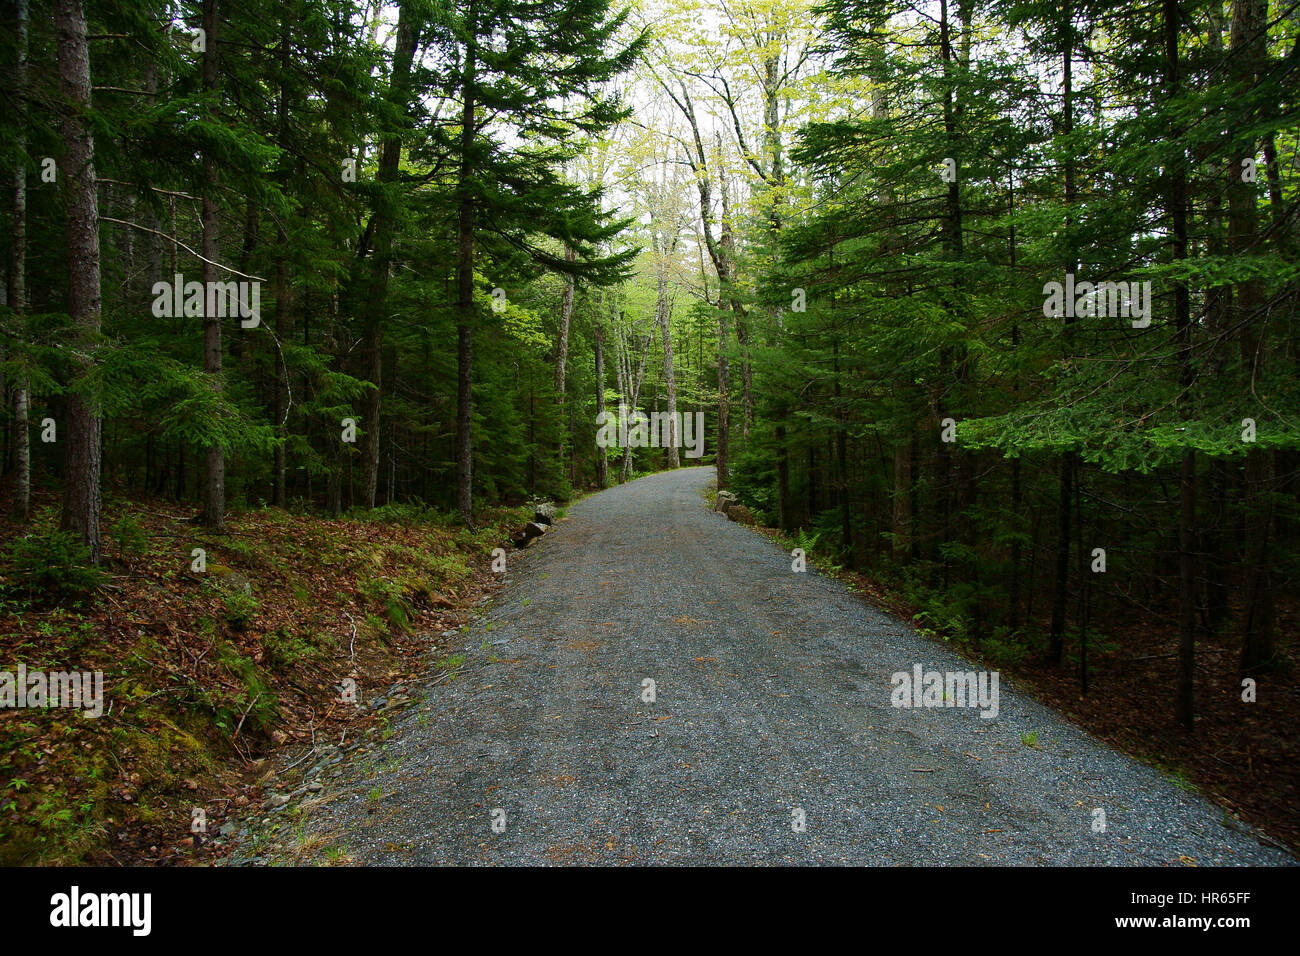 Gravel forest road with pine trees and firs and spruces on the sides - Stock Image